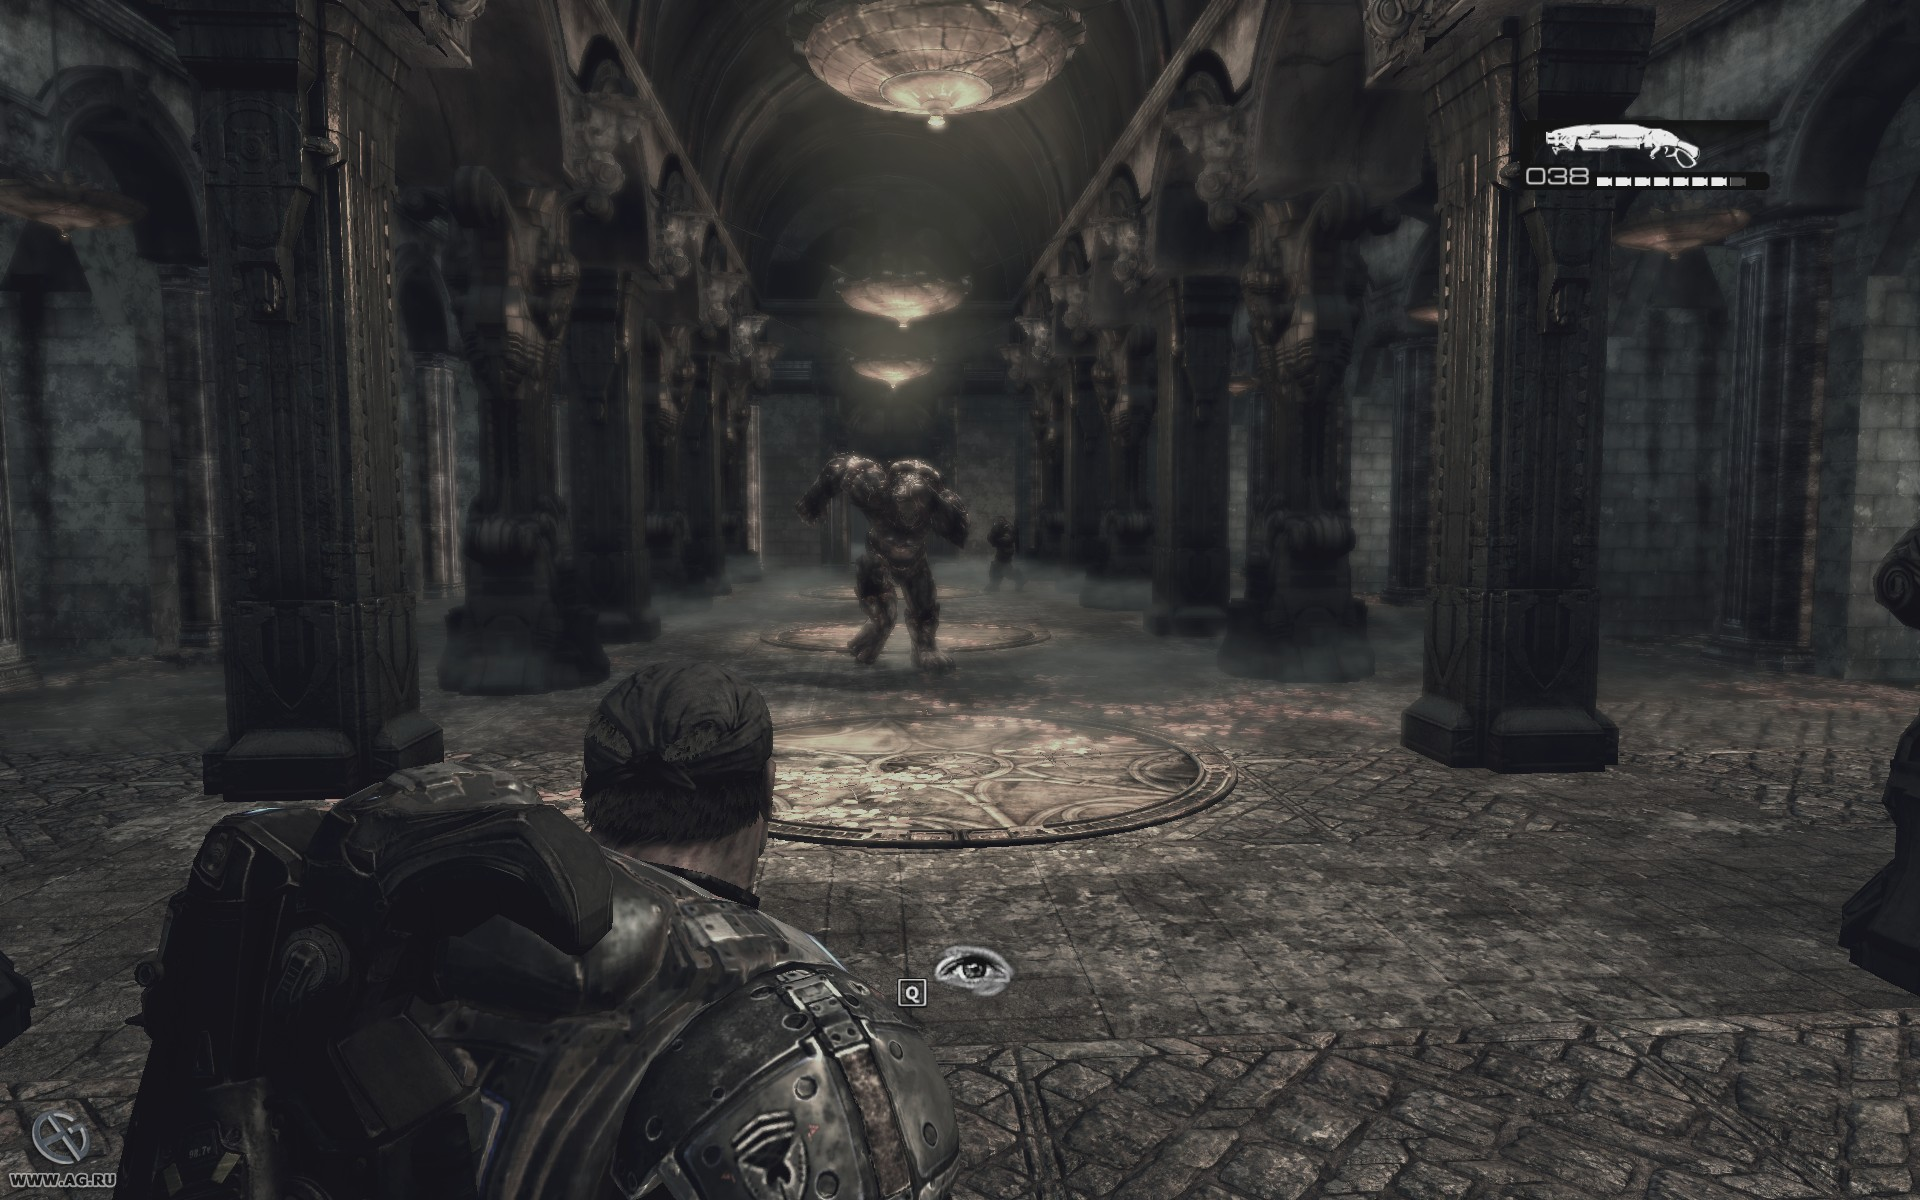 Gears of War [1.0.3340.131] (2007/��/�������) | Repack �� z10yded